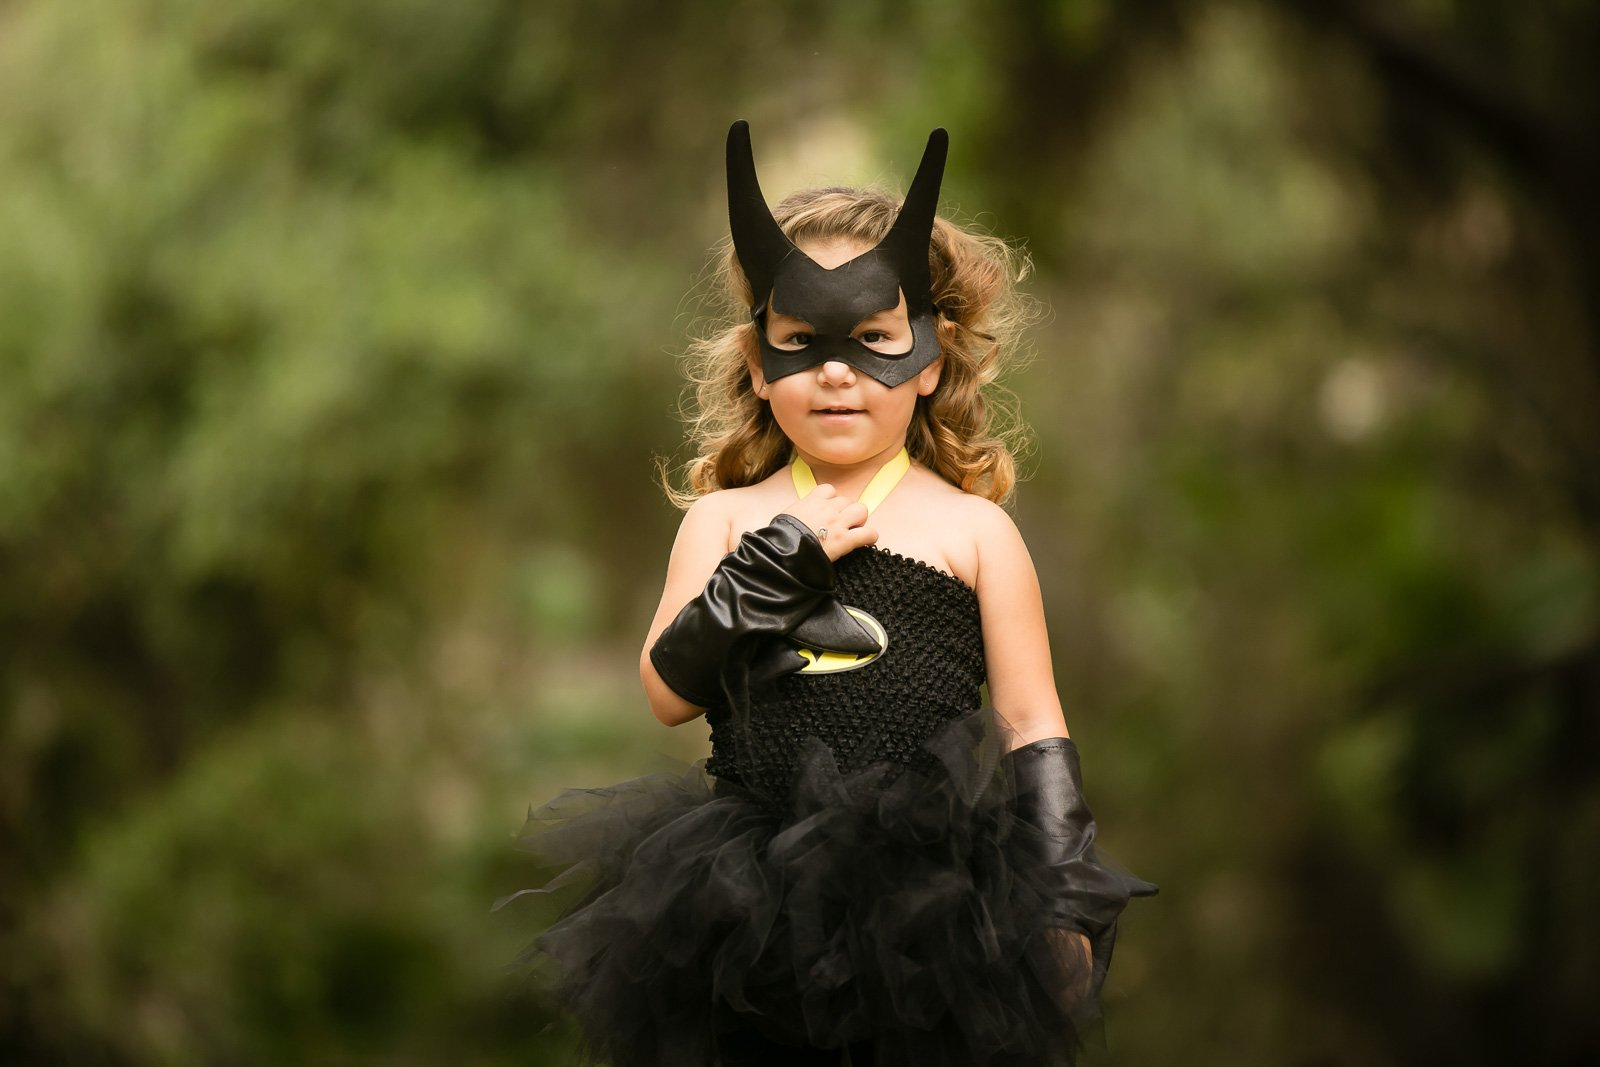 Halloween photo of girl in Batman costume